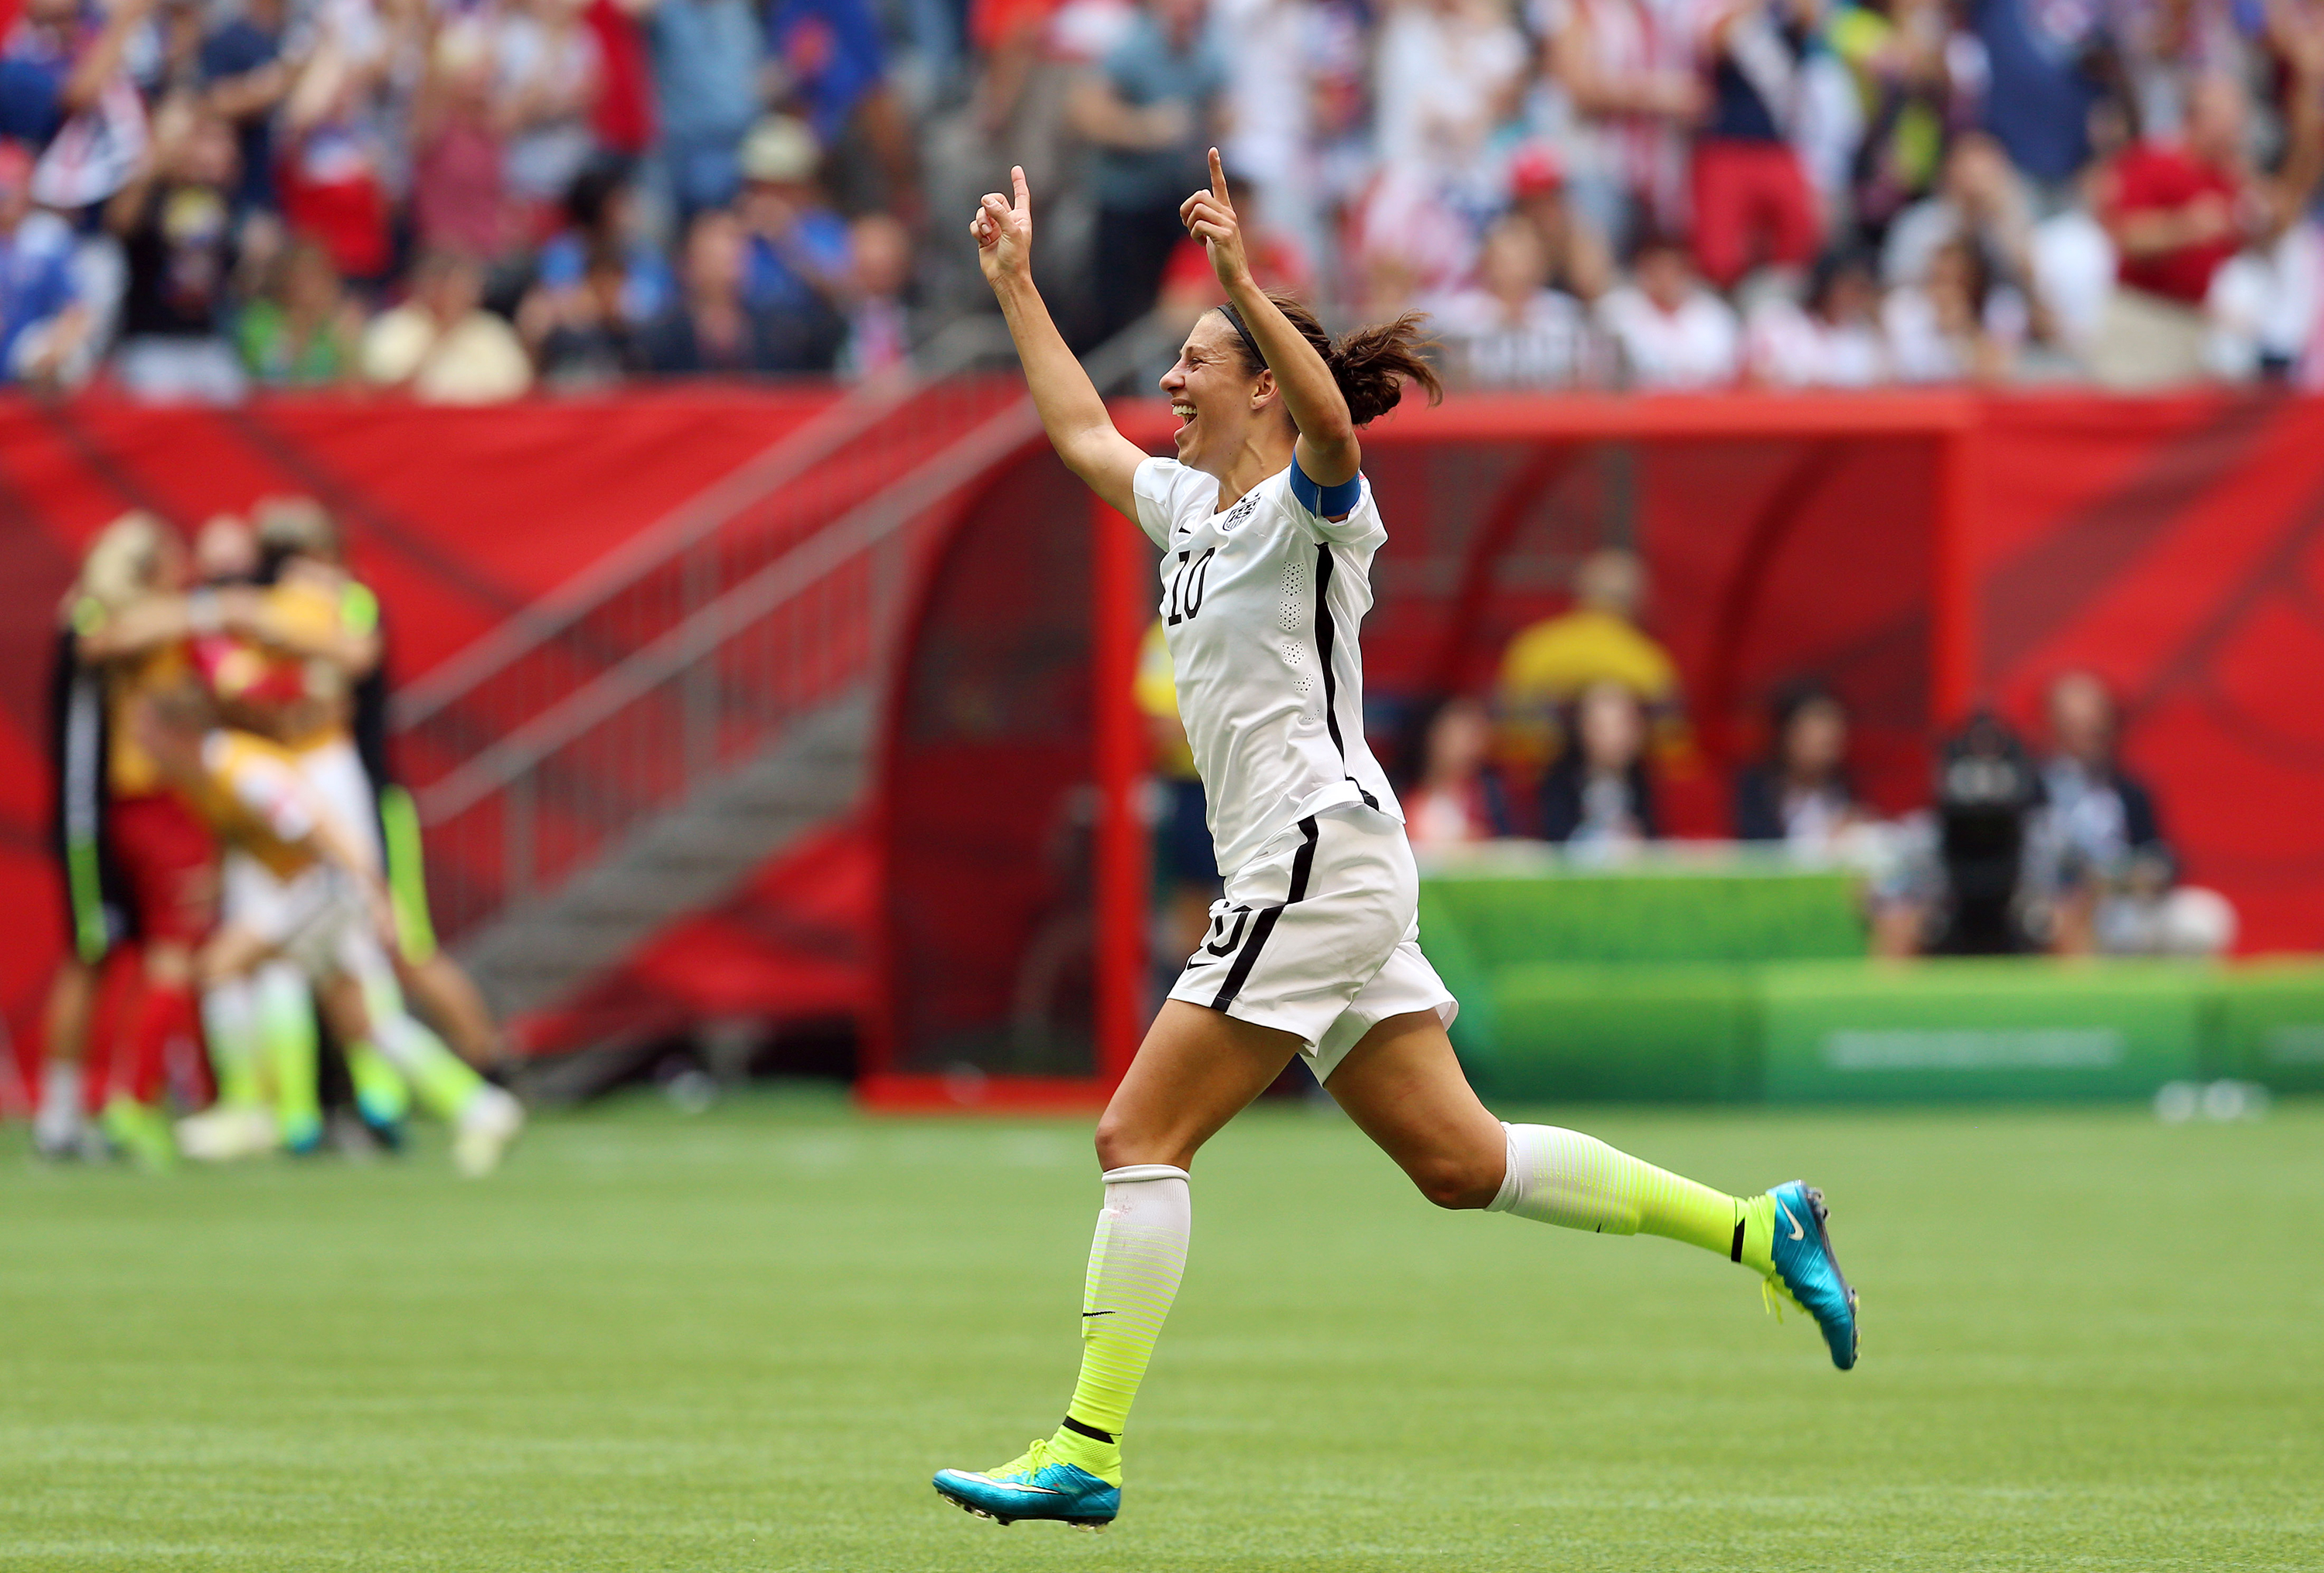 Soccer is flying high in the U.S. after Carli Lloyd helped Team USA win the Women's World Cup. The question is, says columnist Bucky Gleason, how long will fans stay on the bandwagon?